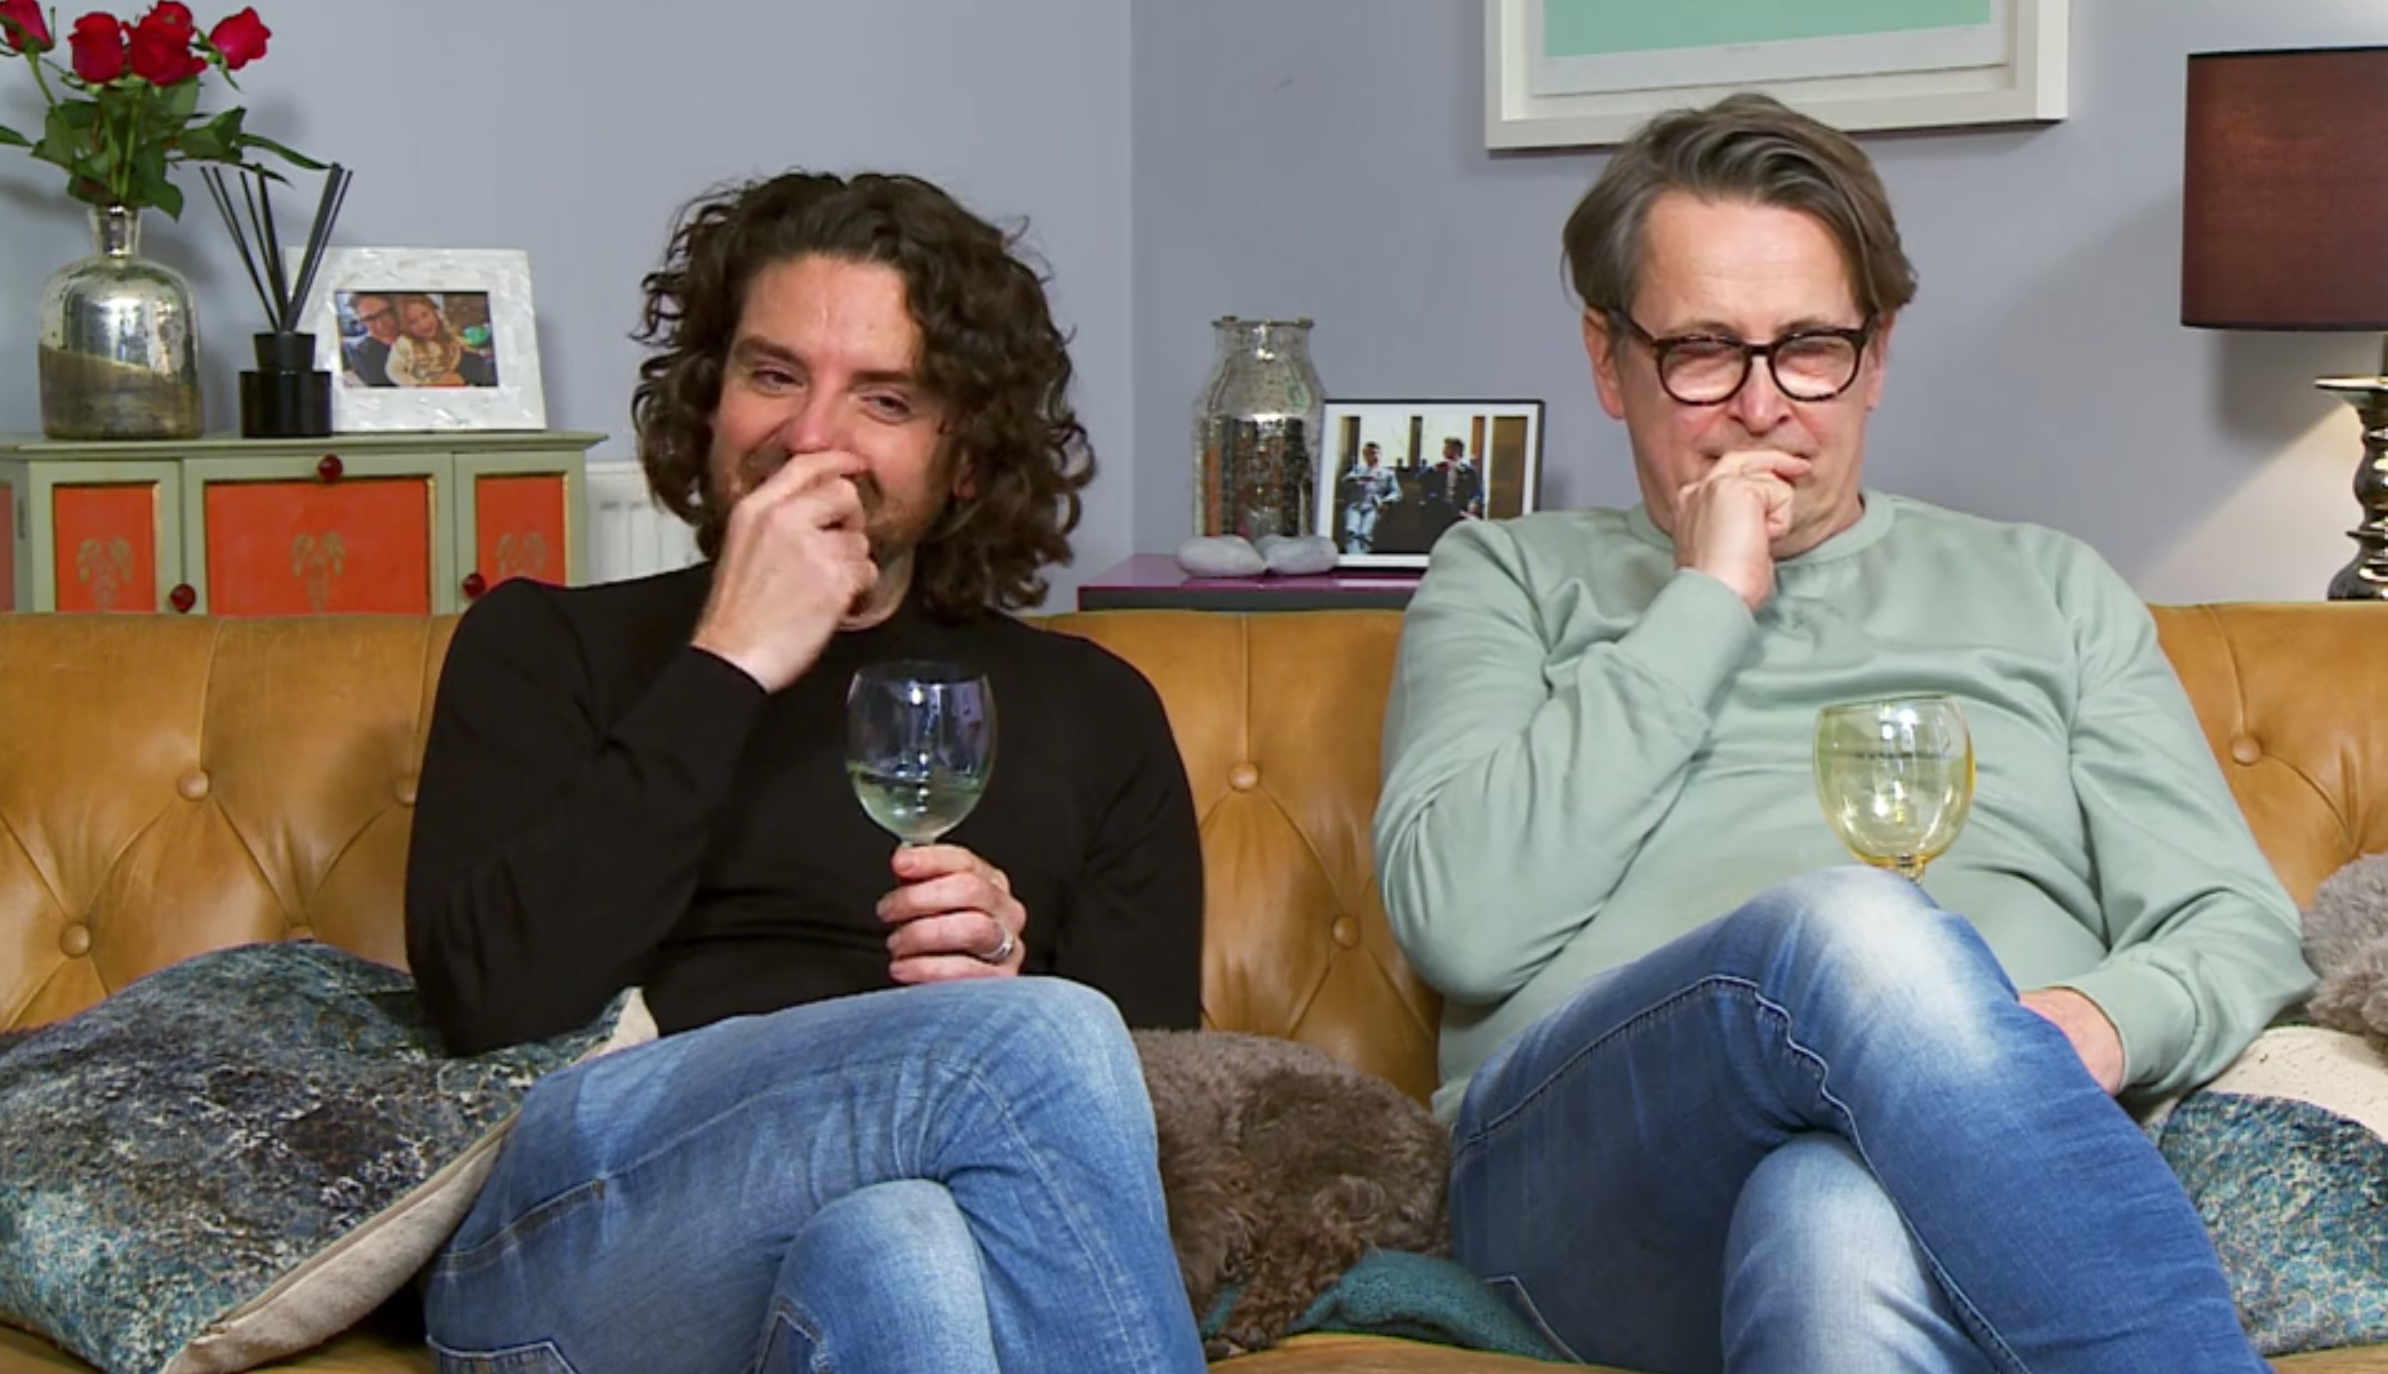 Gogglebox: Viewers divided over Stephen's vagina comment